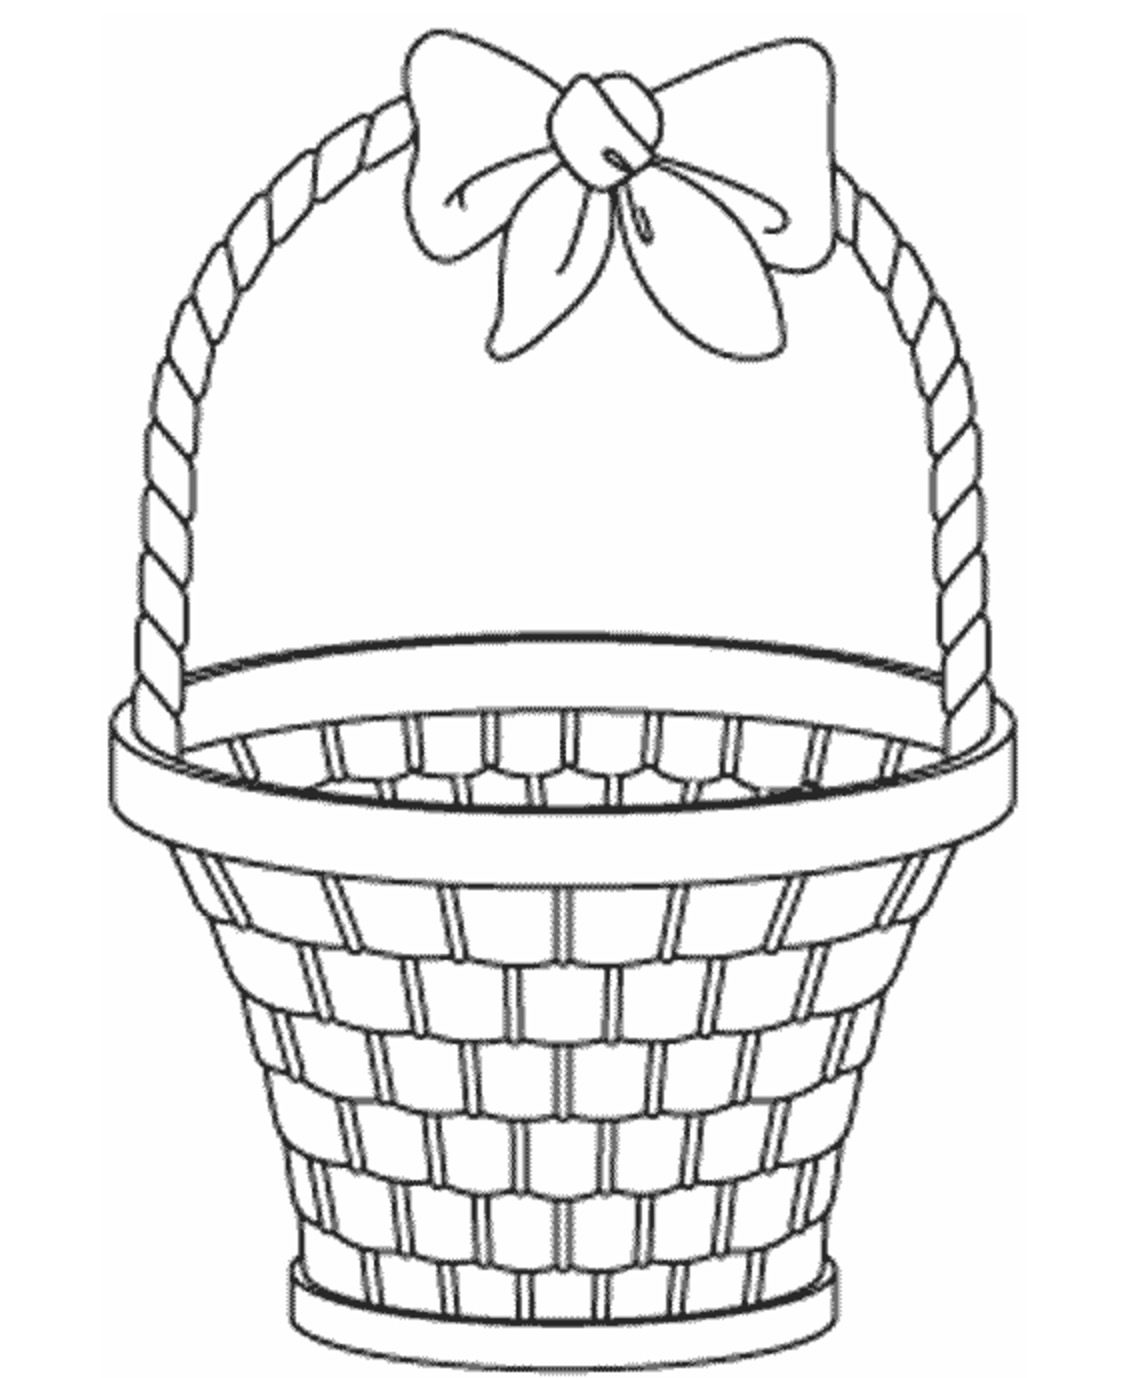 Empty Easter Basket Coloring Book